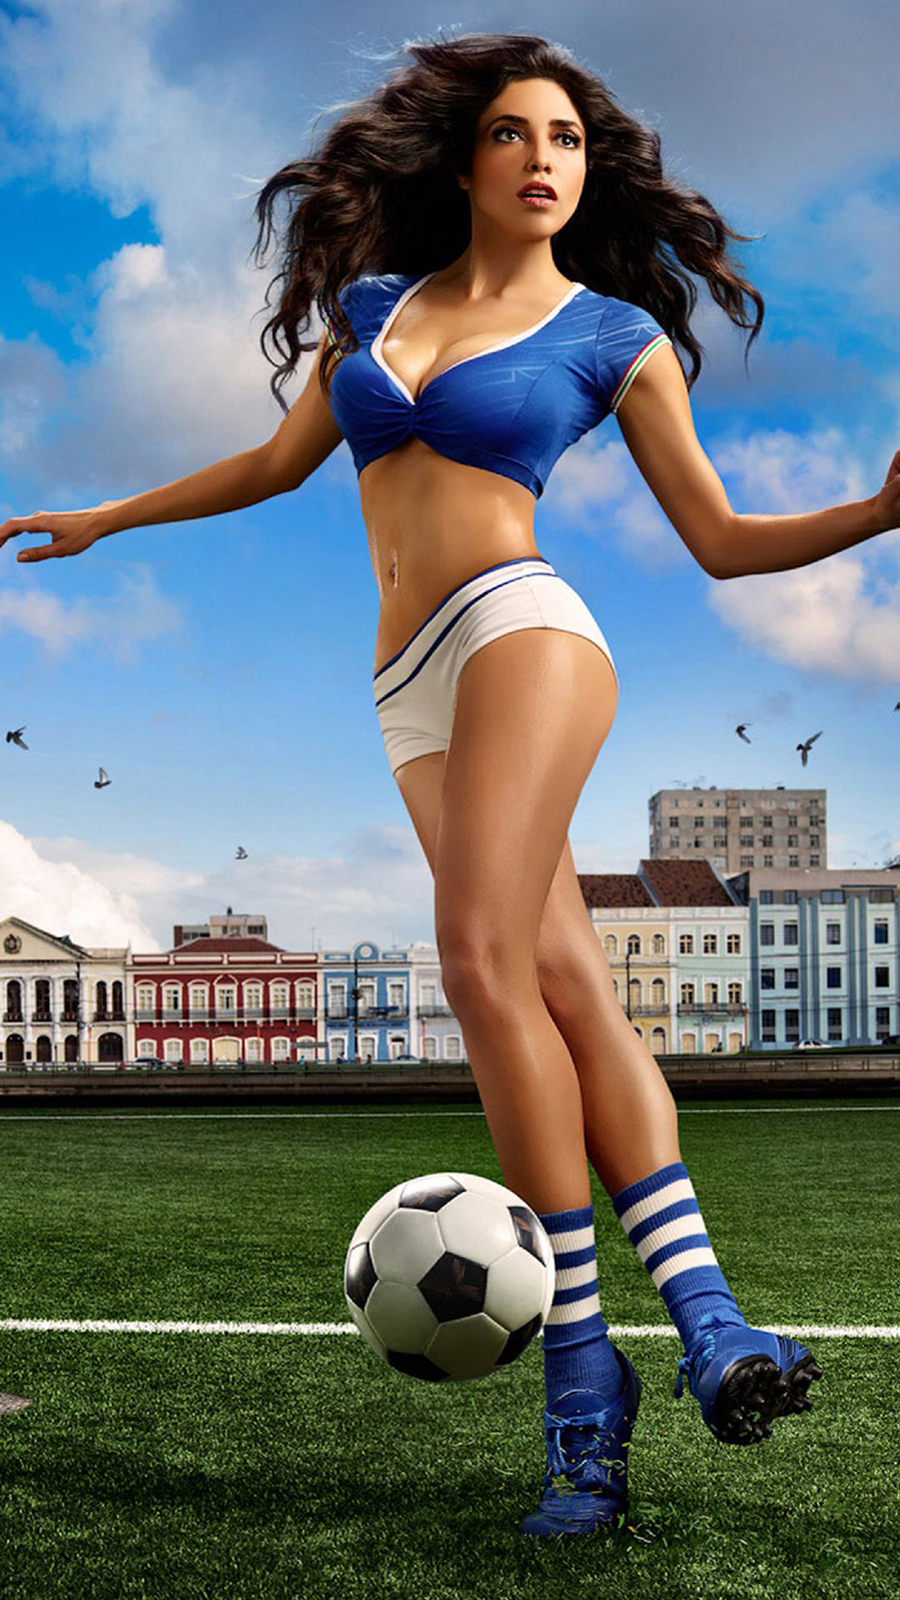 FIFA World Cup 2014 Brunette Sexy Girl Phone Wallpapers Free Download